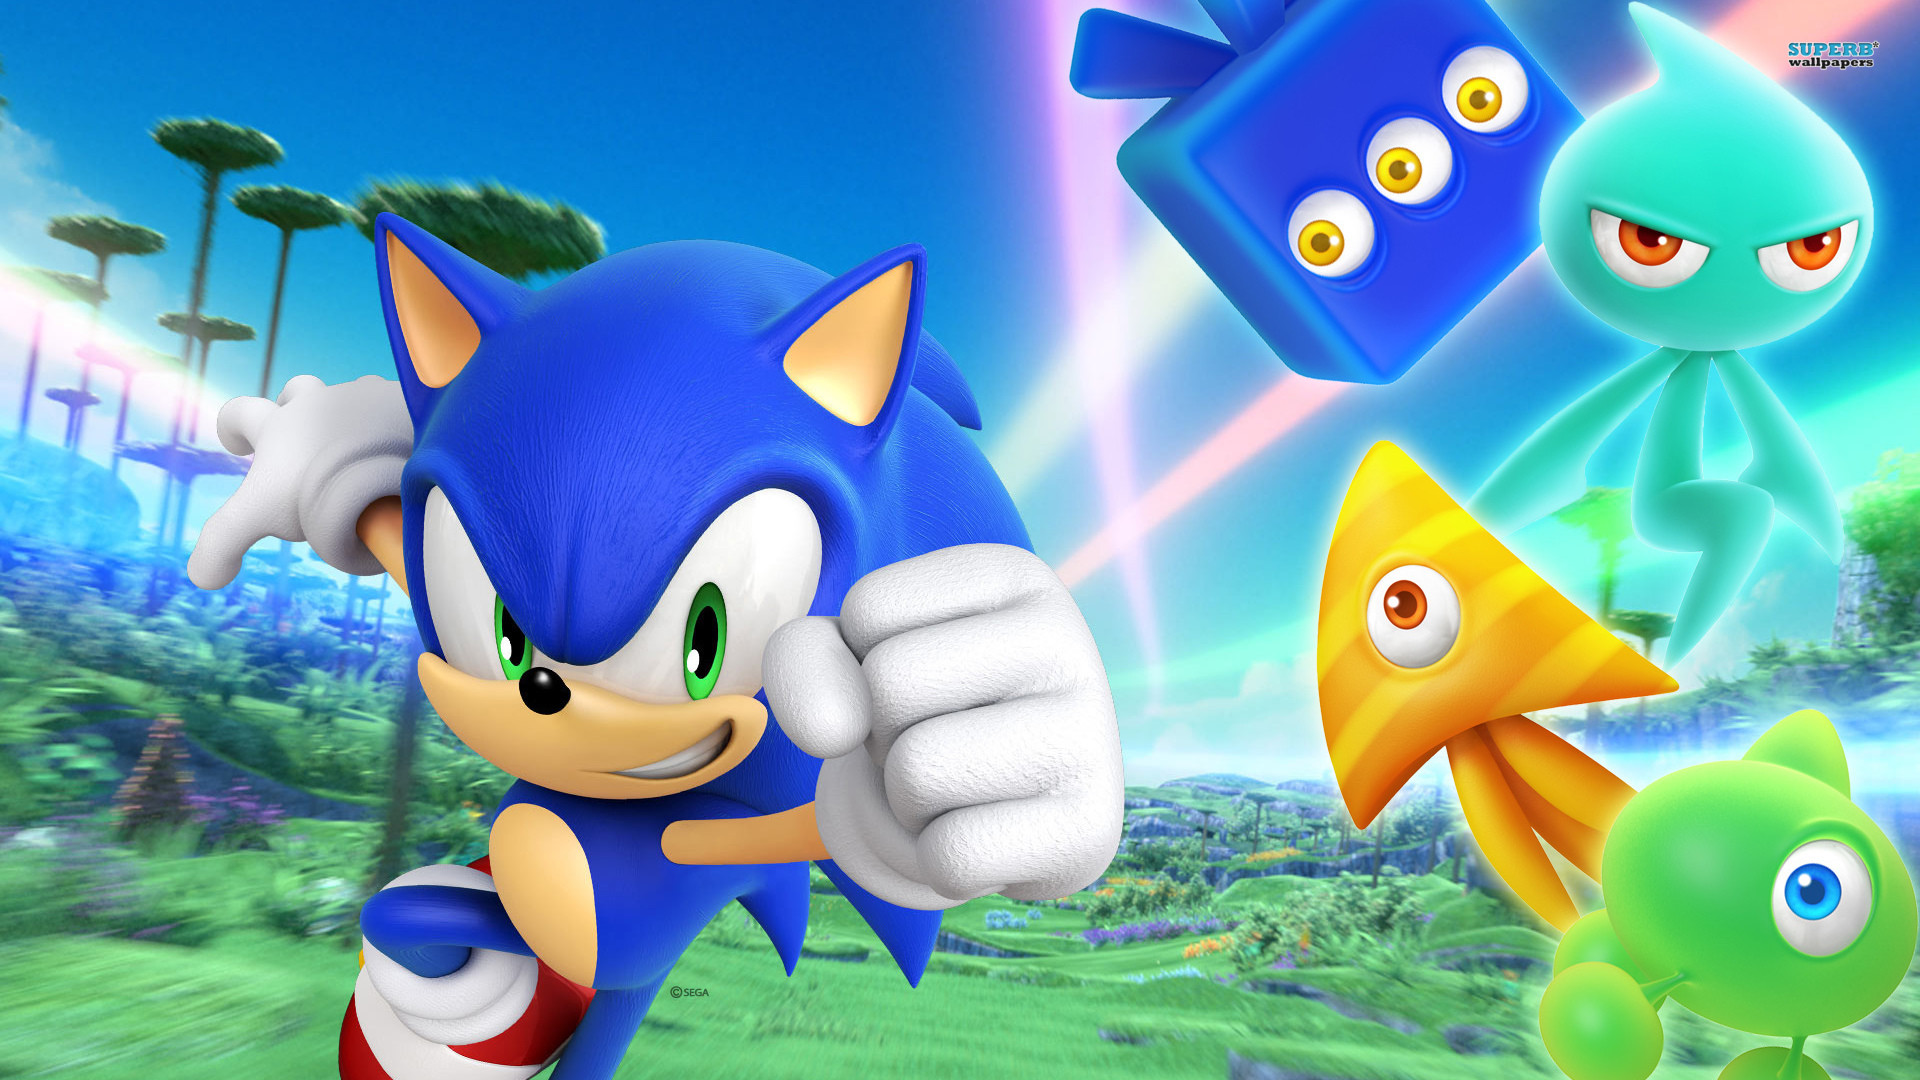 images of sonic the hedgehog game   Sonic the Hedgehog wallpaper 1920×1080